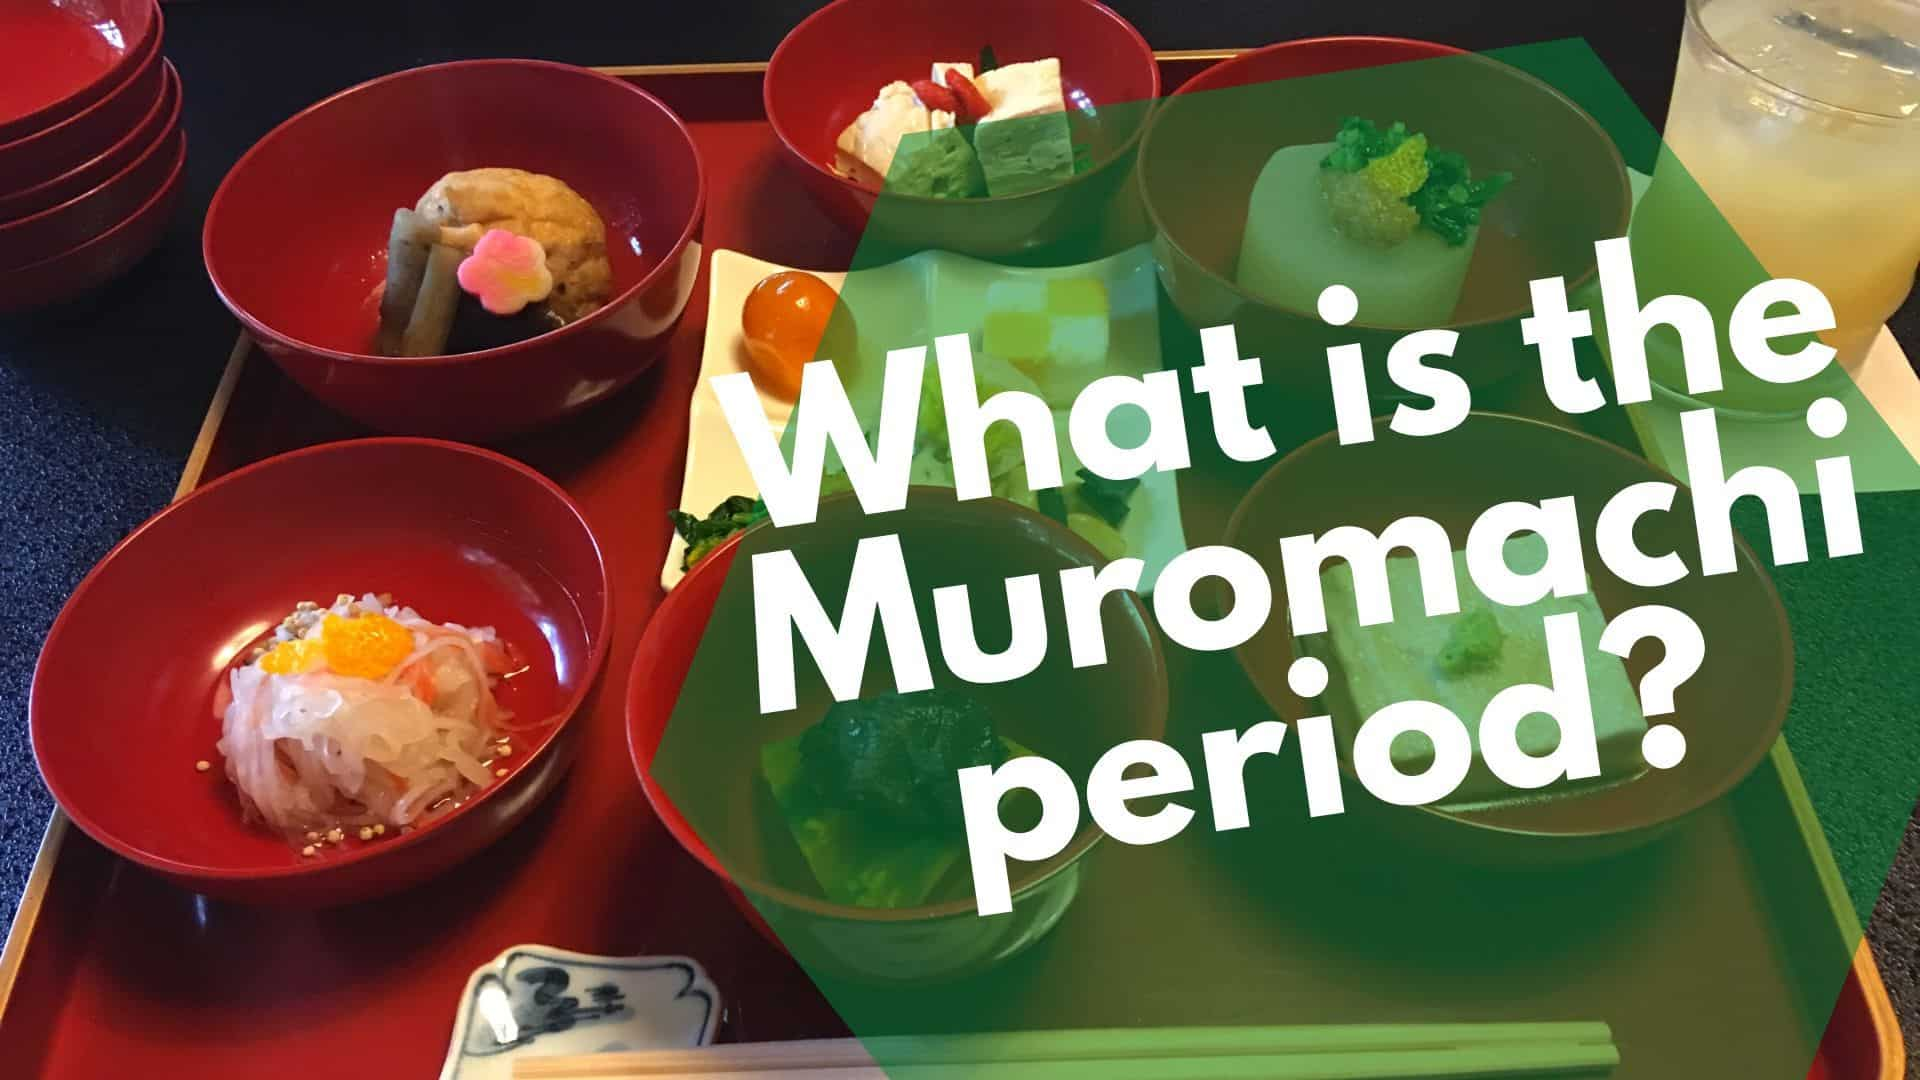 What is the Muromachi period?